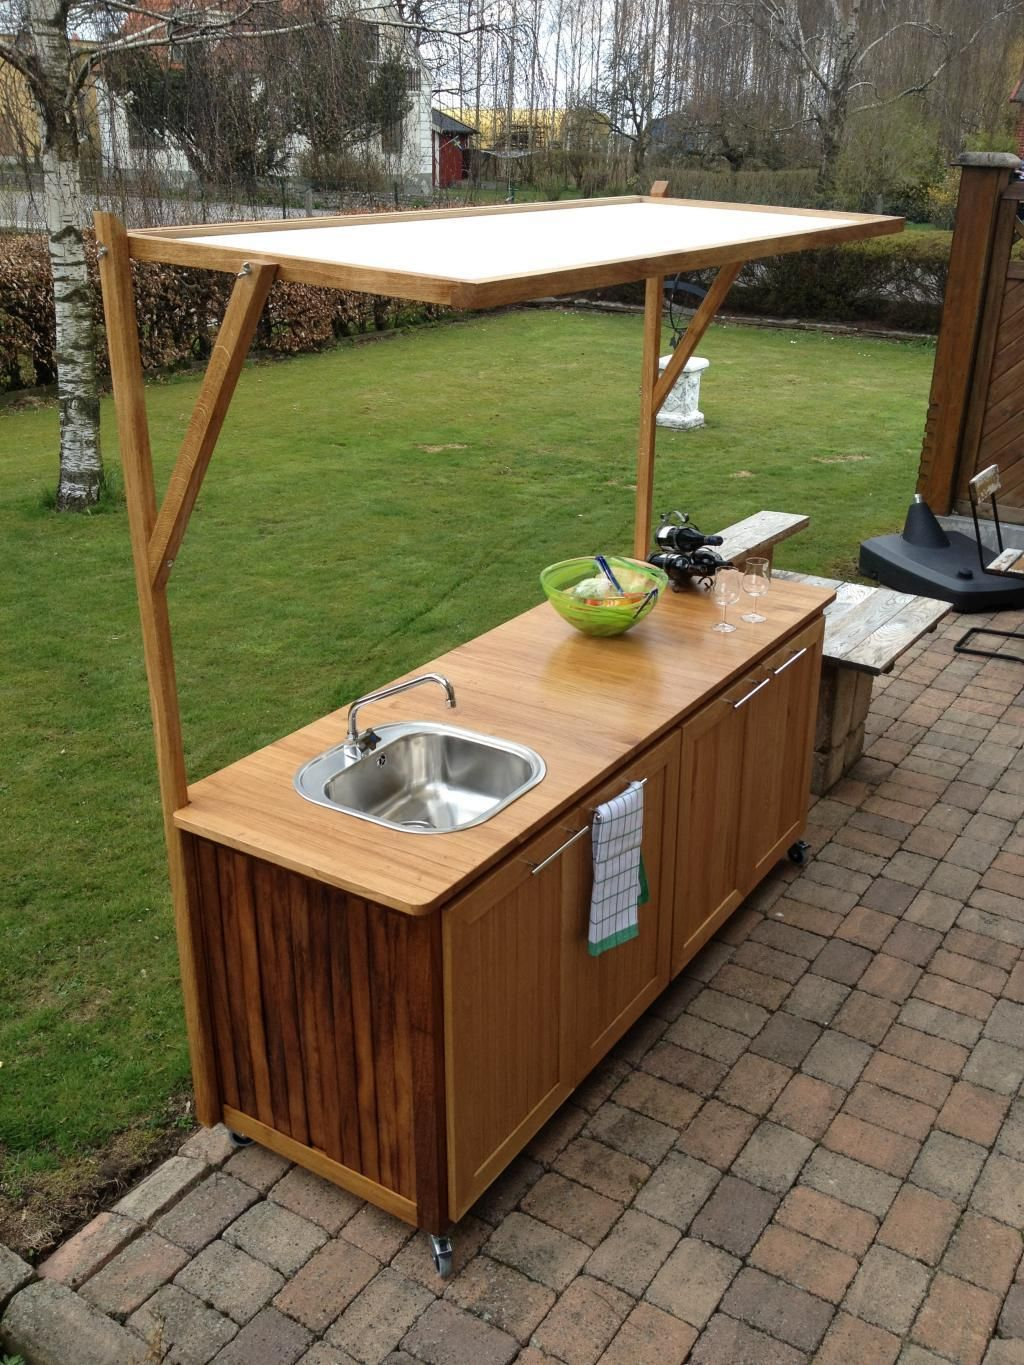 Outdoor Kitchen Ideas On A Budget Affordable Small And Diy Outdoor Kitchen Ideas Simple Outdoor Kitchen Small Outdoor Kitchens Diy Outdoor Kitchen